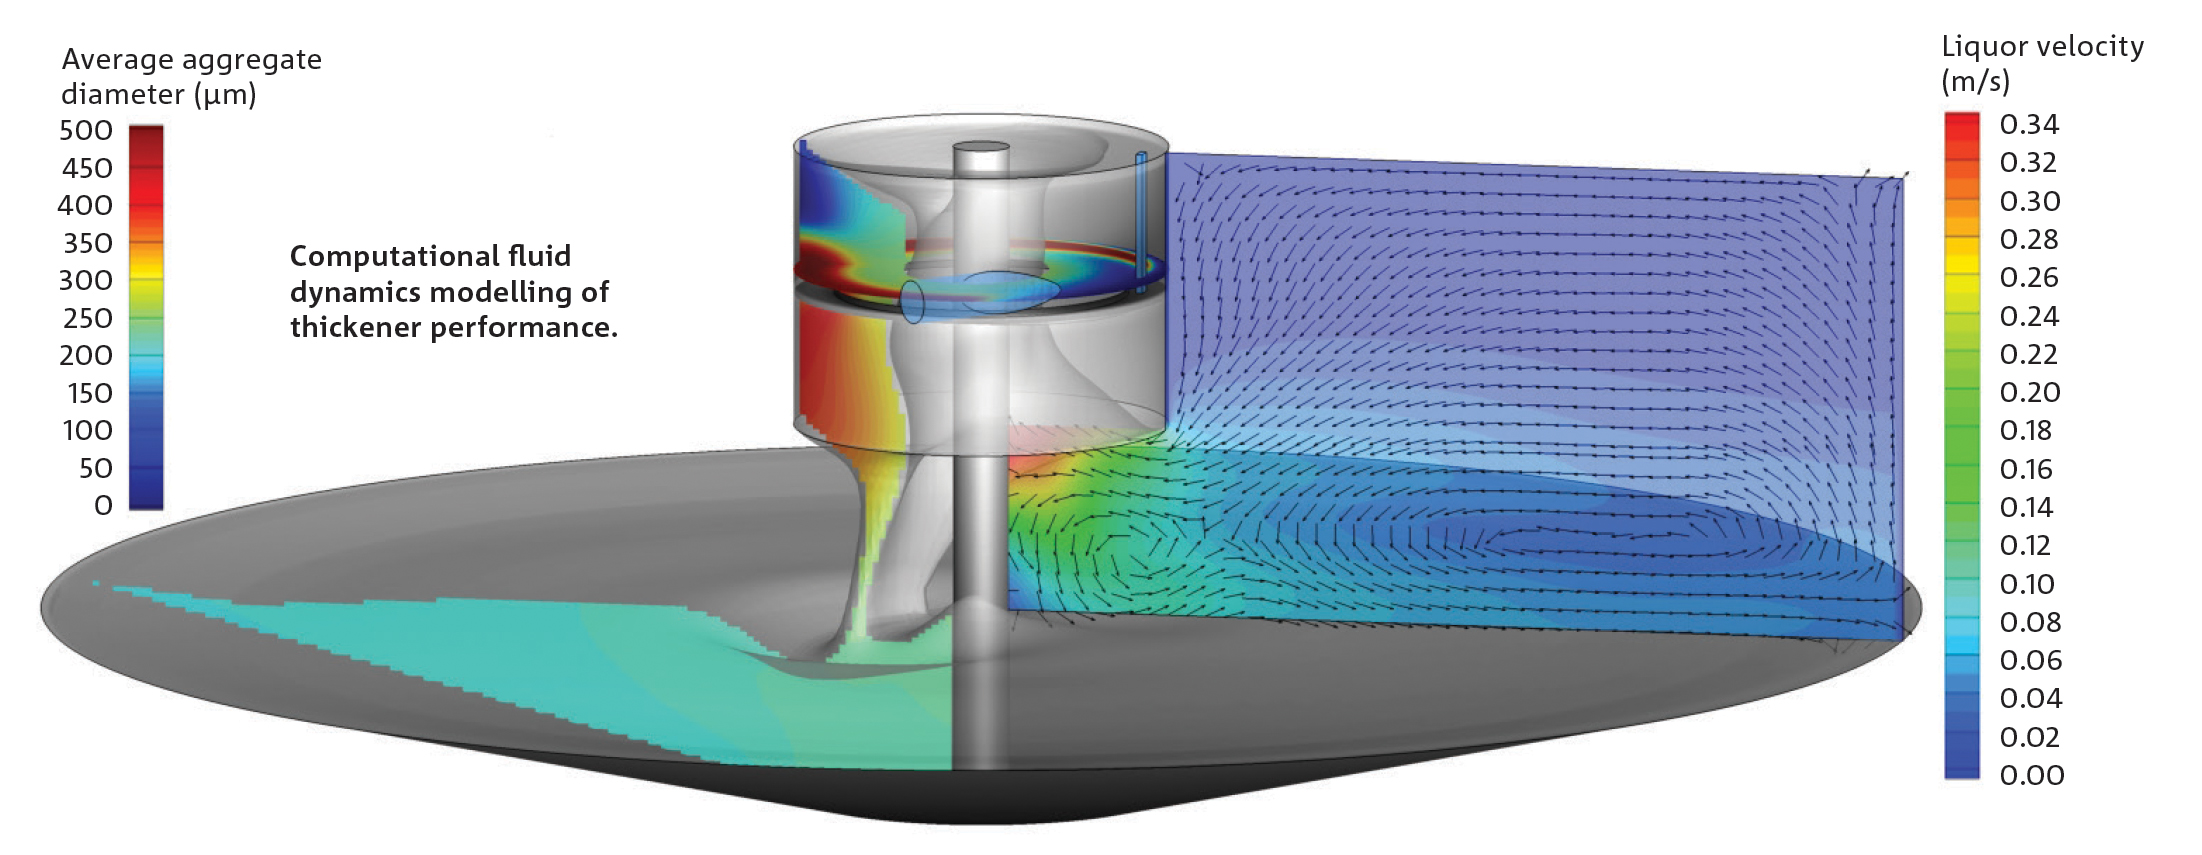 Schematic of model of thickener performance showing a central drum swirling around a central pivot spinning about a disc, showing fluid flow coloured according to particle diameter and liquid velocity